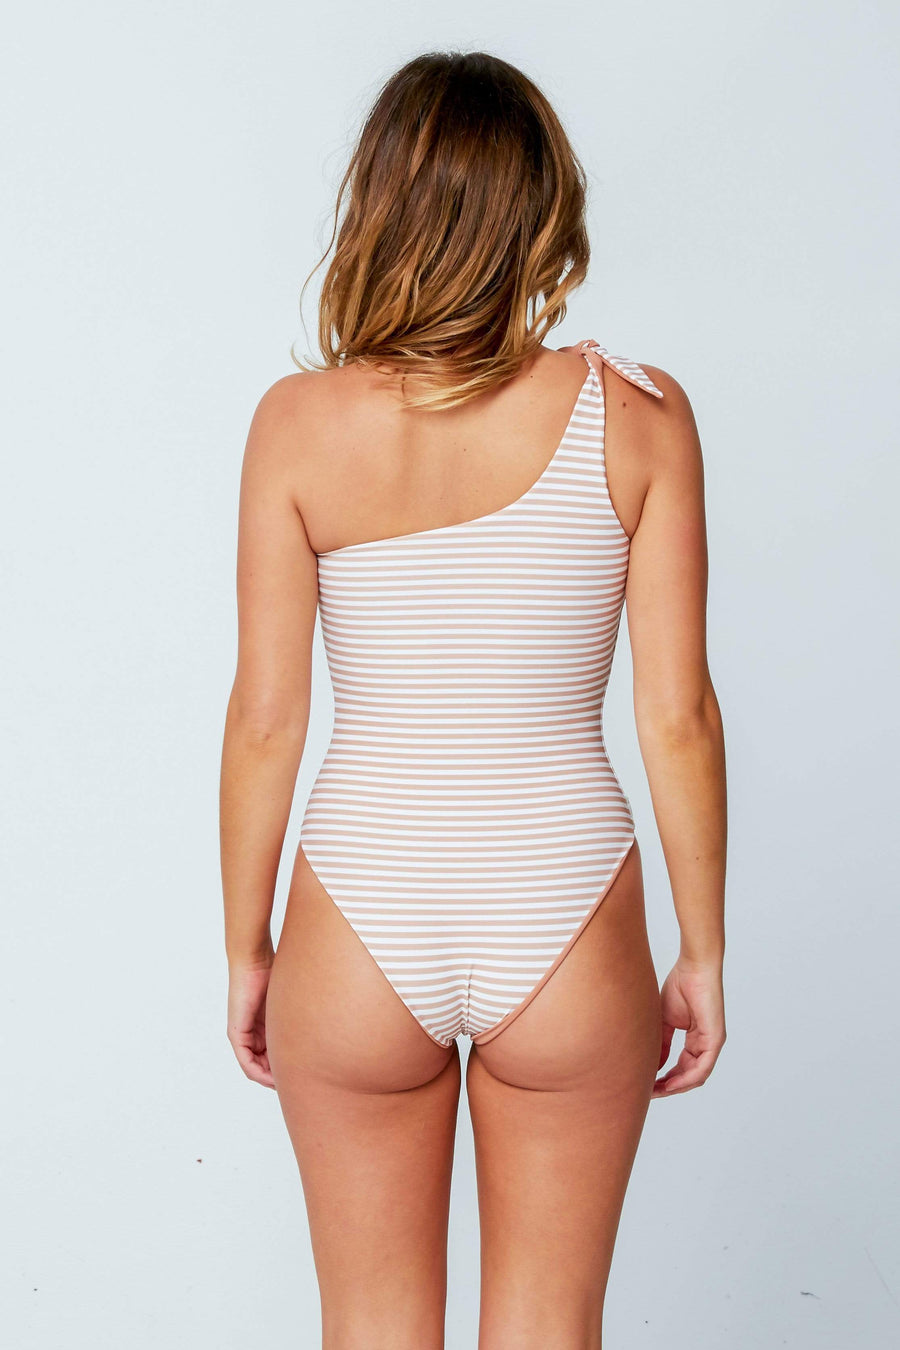 Aloé Swimwear One Piece IBIZA ONE PIECE IN CREAM BATH